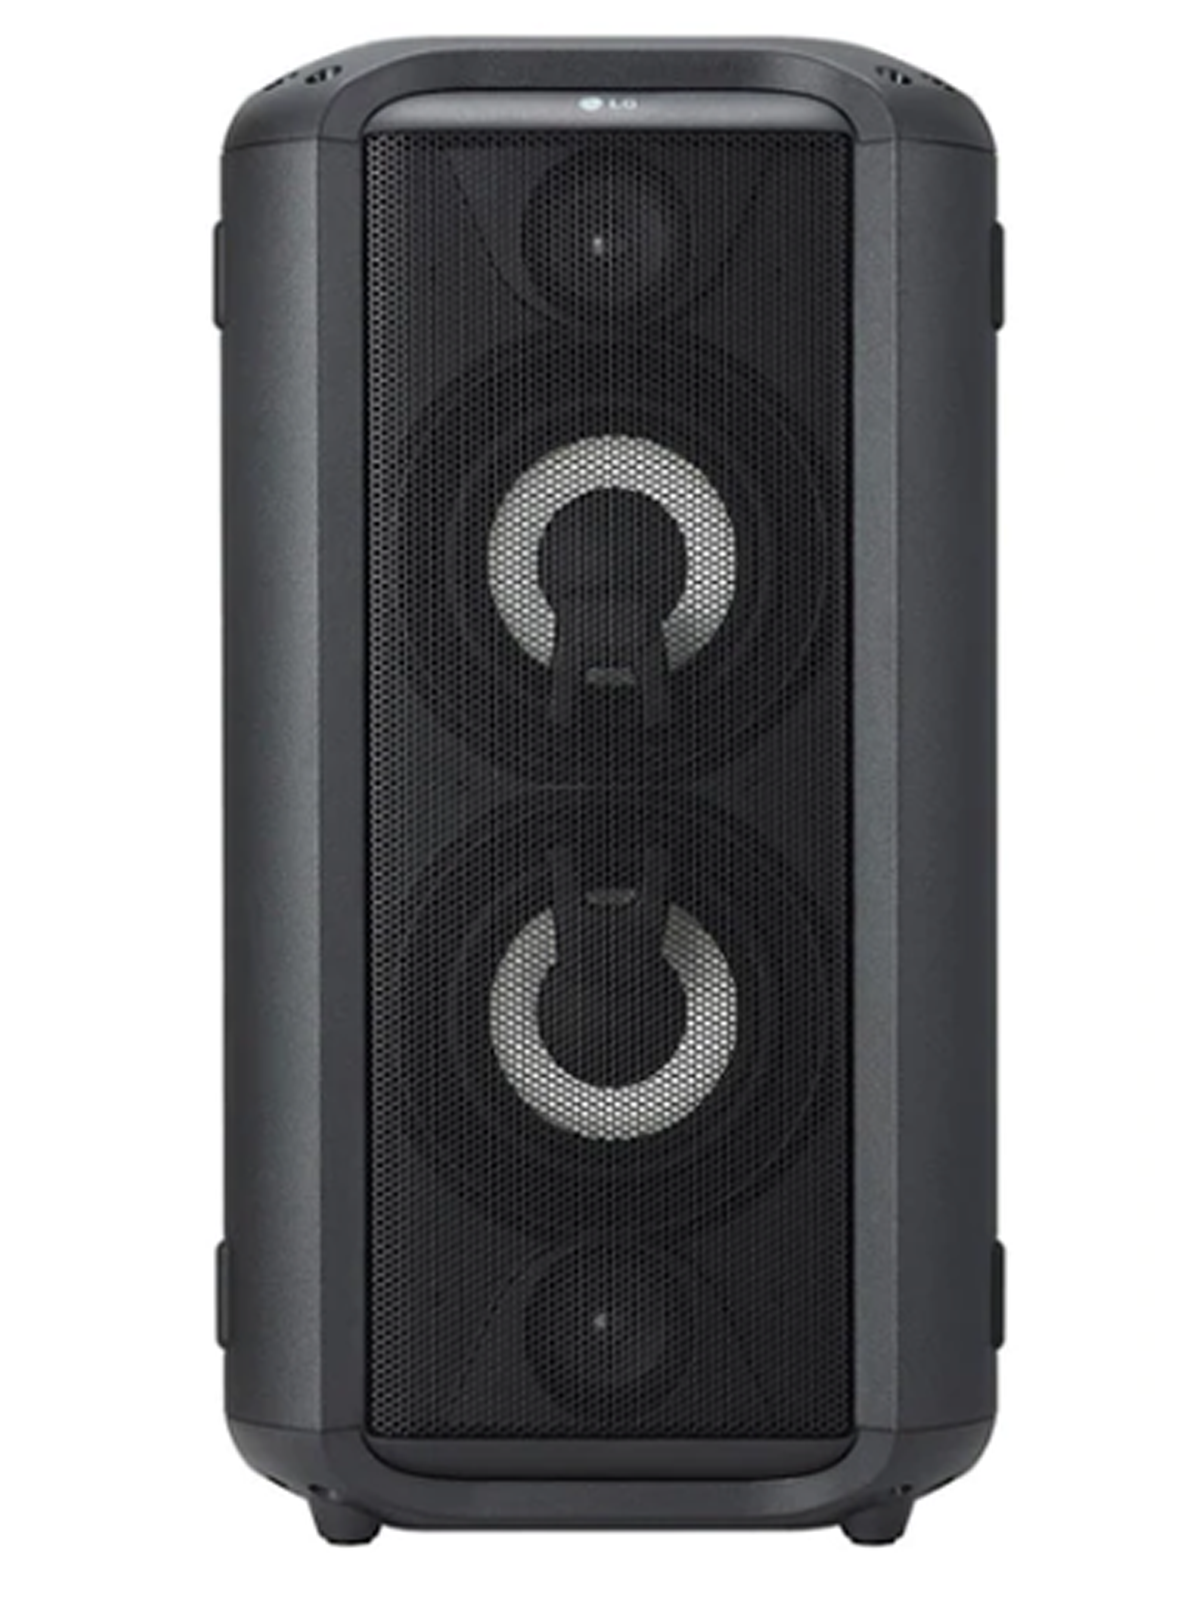 LG TORRE AUDIO RL4 XBOOM PORTATILE 150W BT/WIRELESS